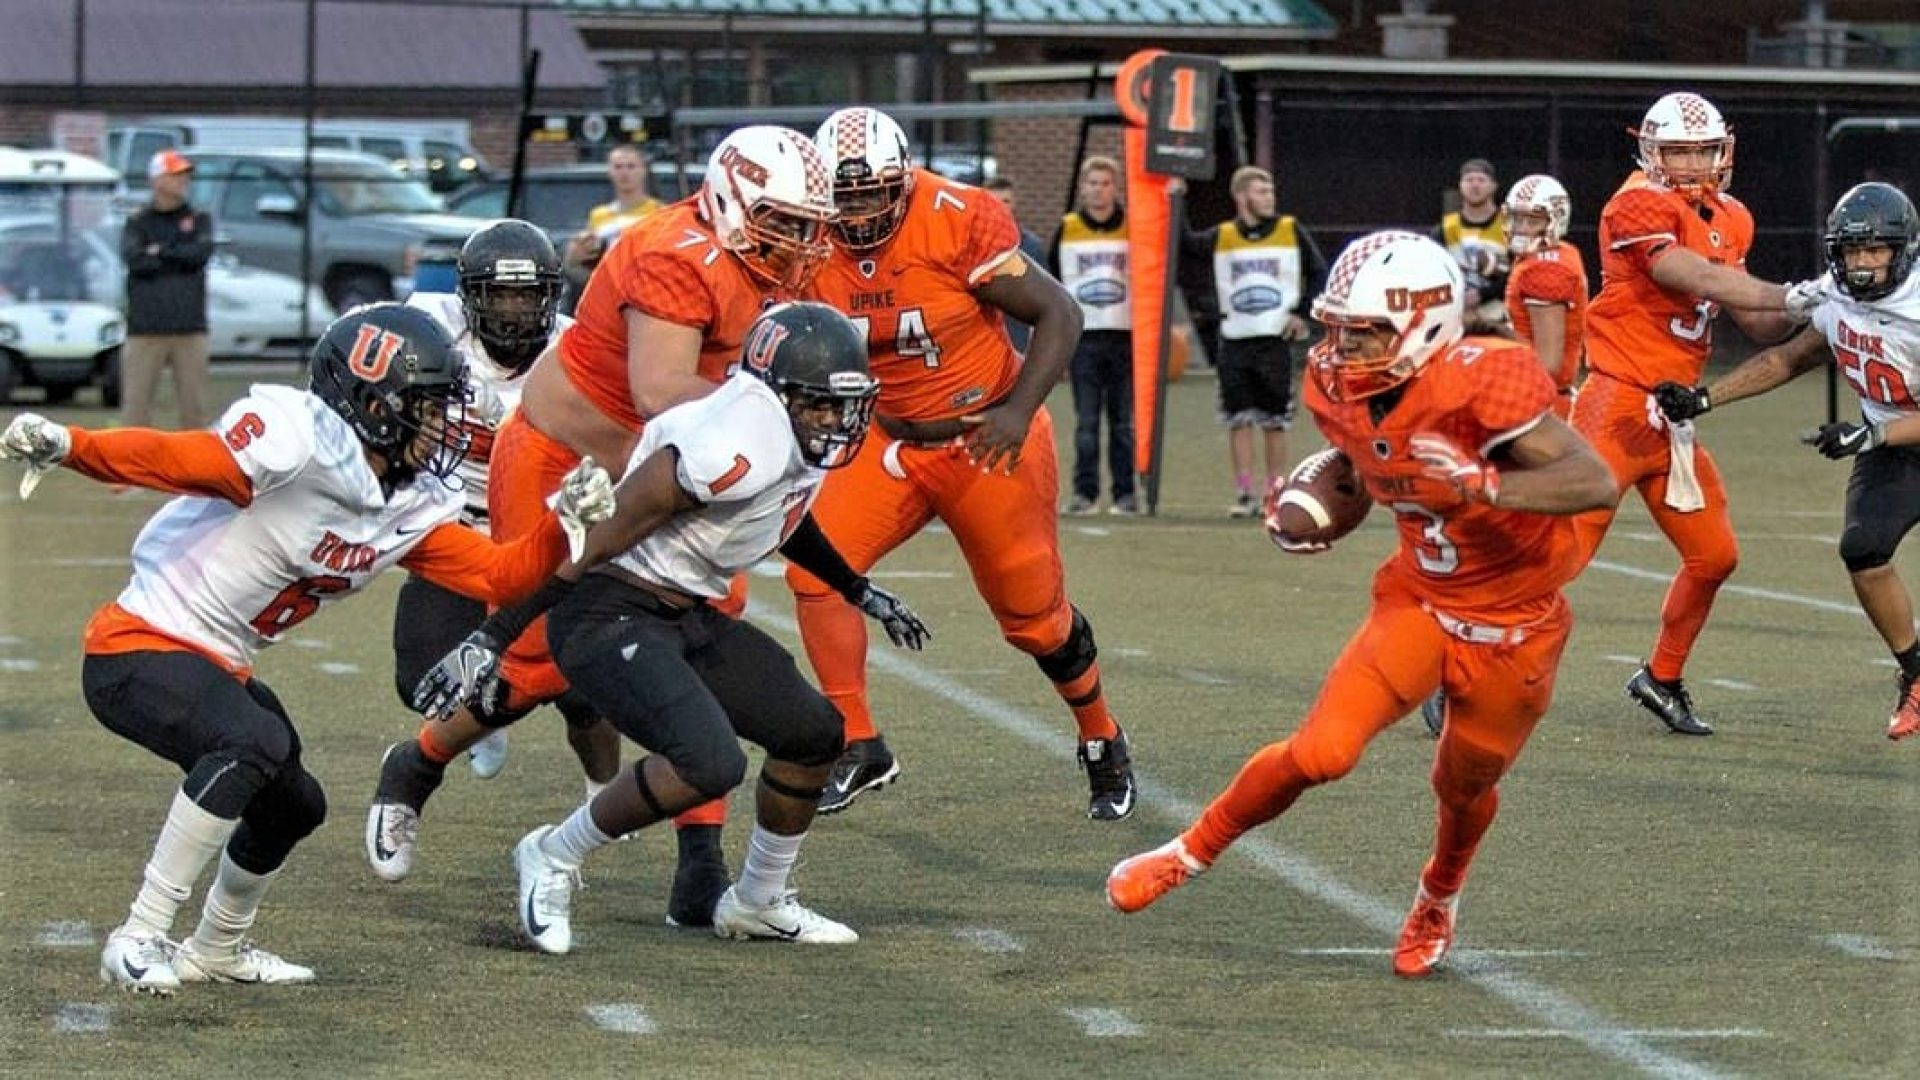 UPIKE SPORTS ROUNDUP: Willis earns player of the week honors